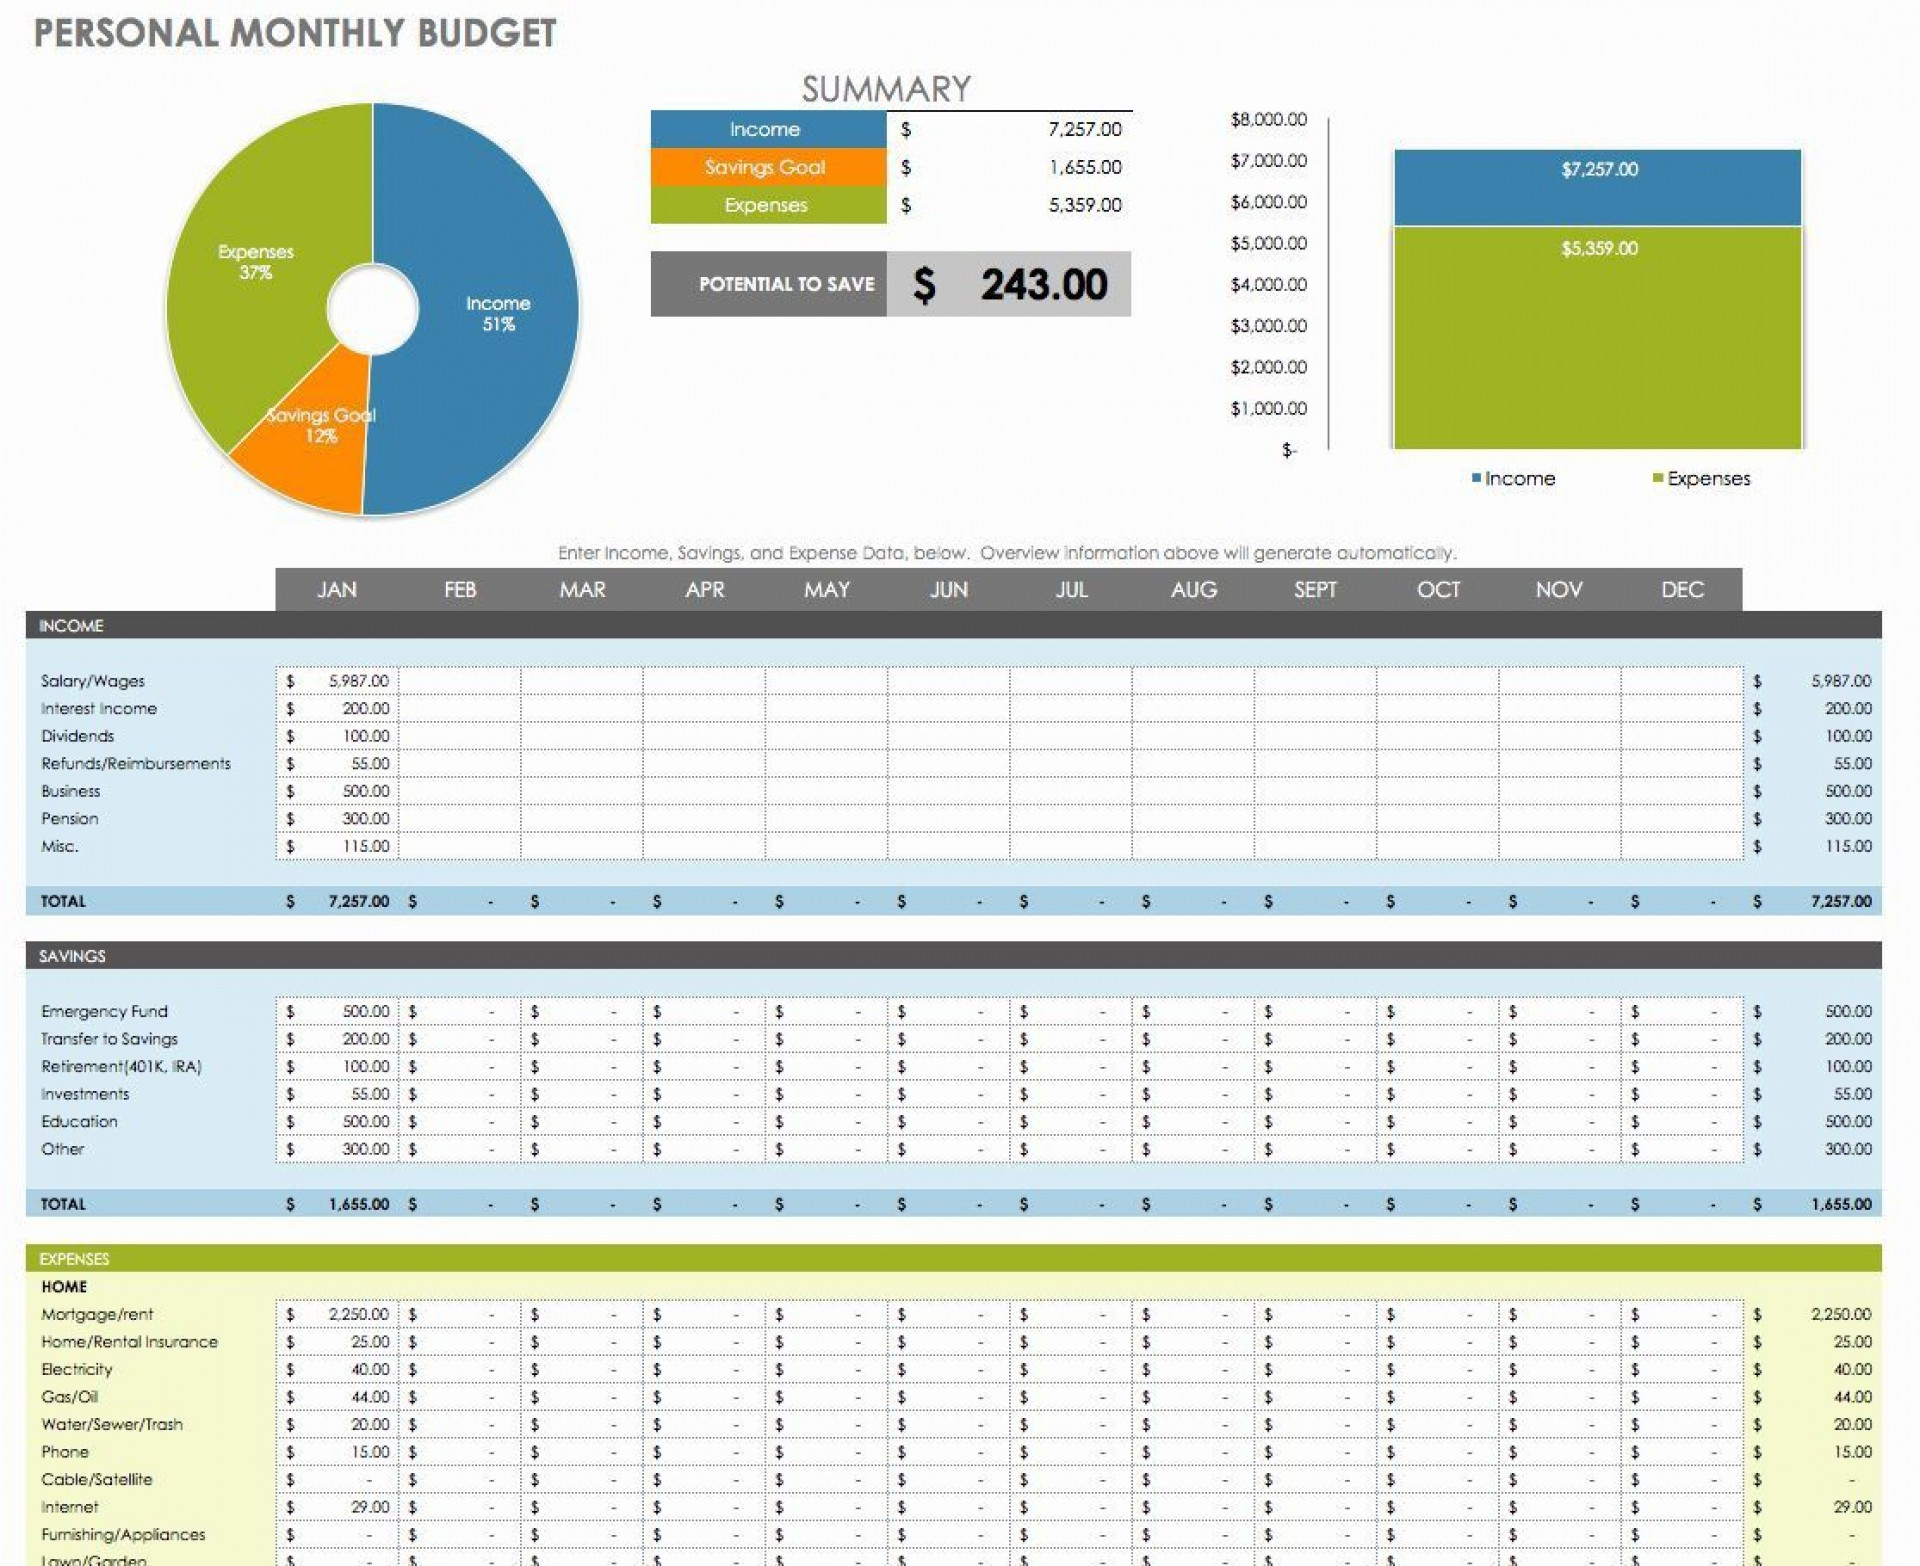 000 Archaicawful Personal Financial Template Excel Picture  Statement Budget India Expense Report1920